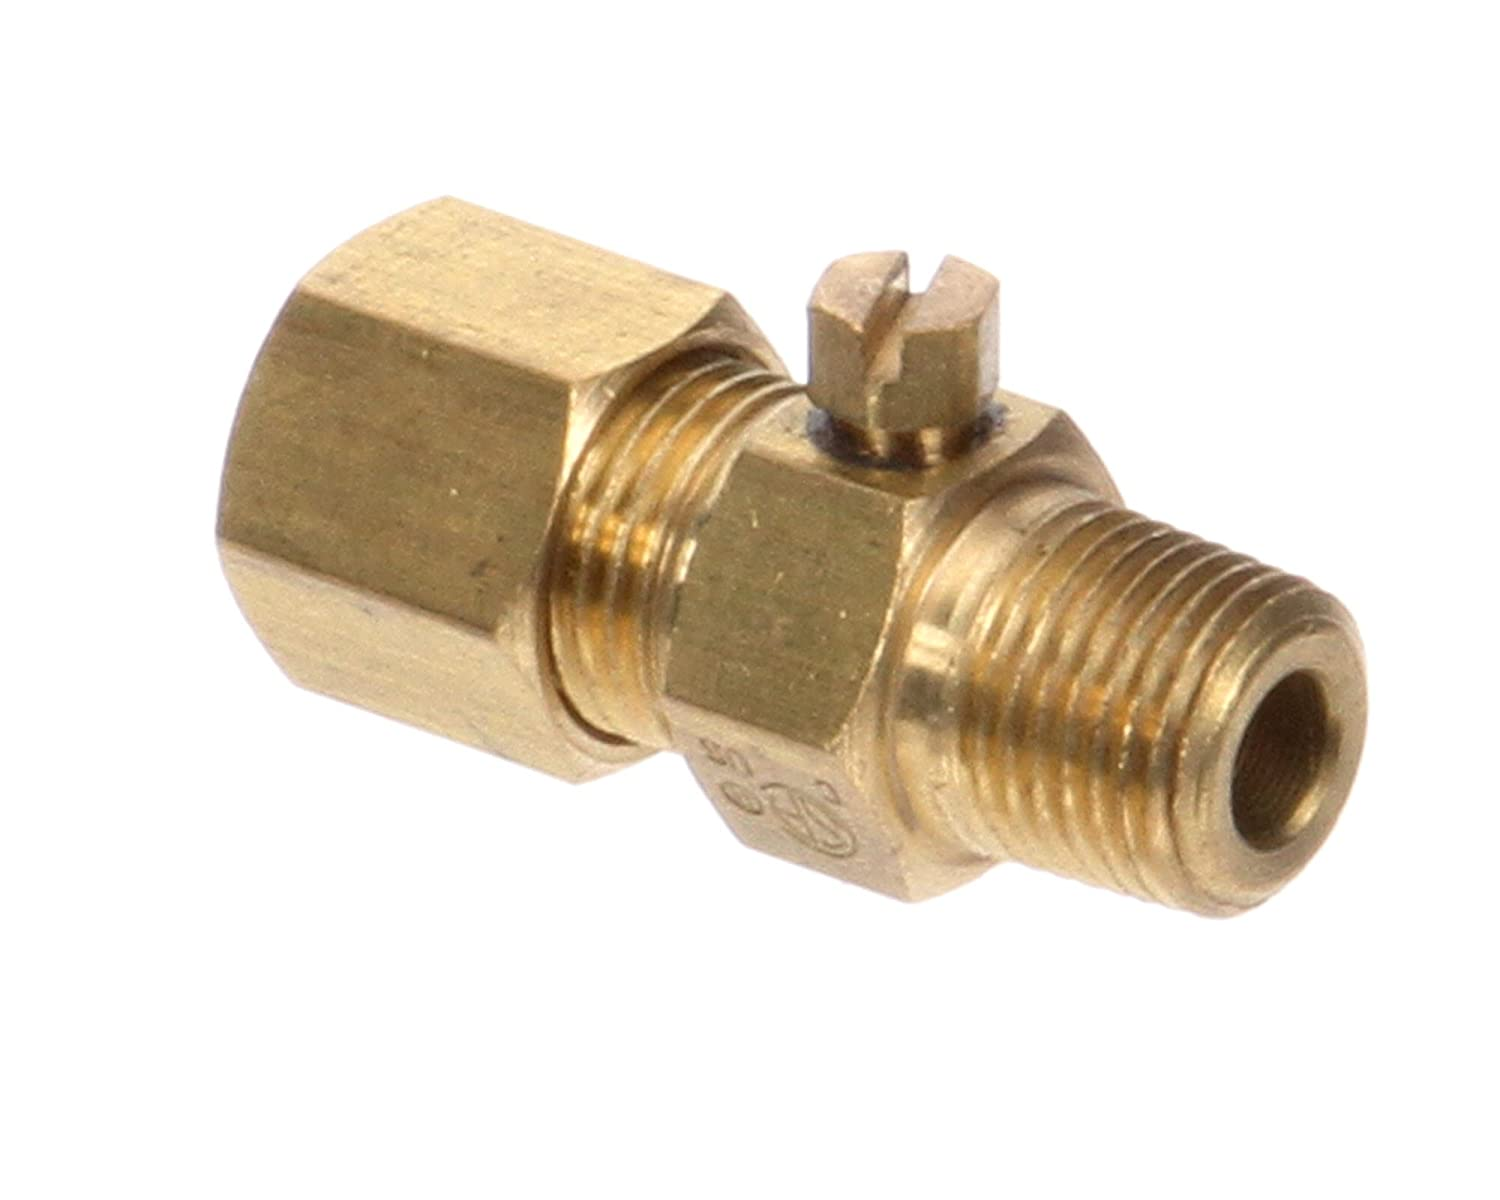 Vulcan-Hart 00-844516-00014 Pilot Valve for Compatible Vulcan-Hart Infrared Cheese Melters